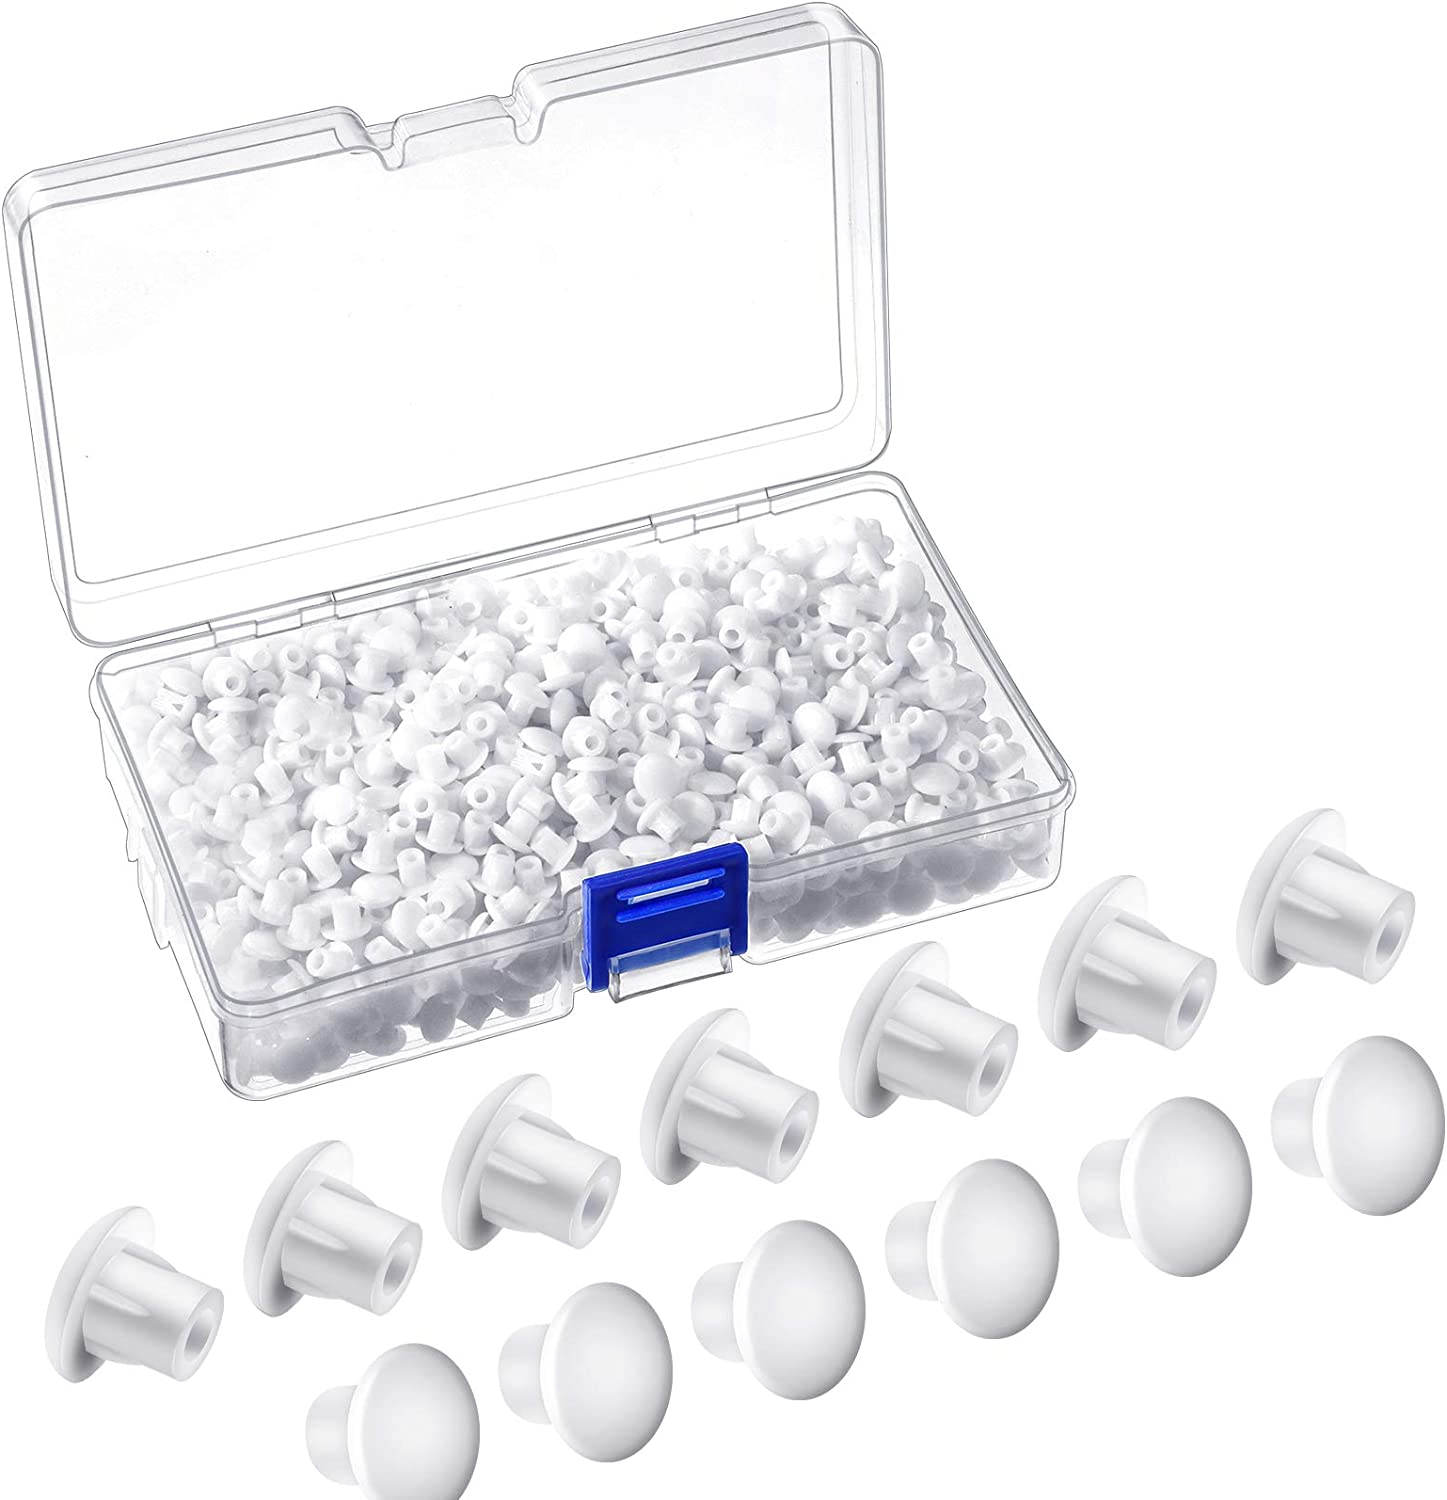 500 Pieces 5 Millimetres Plastic Hole Plugs 3/16 Inches Round Button Plugs Screw Cap White Drilling Cover Plugs for Cabinet Cupboard Shelves